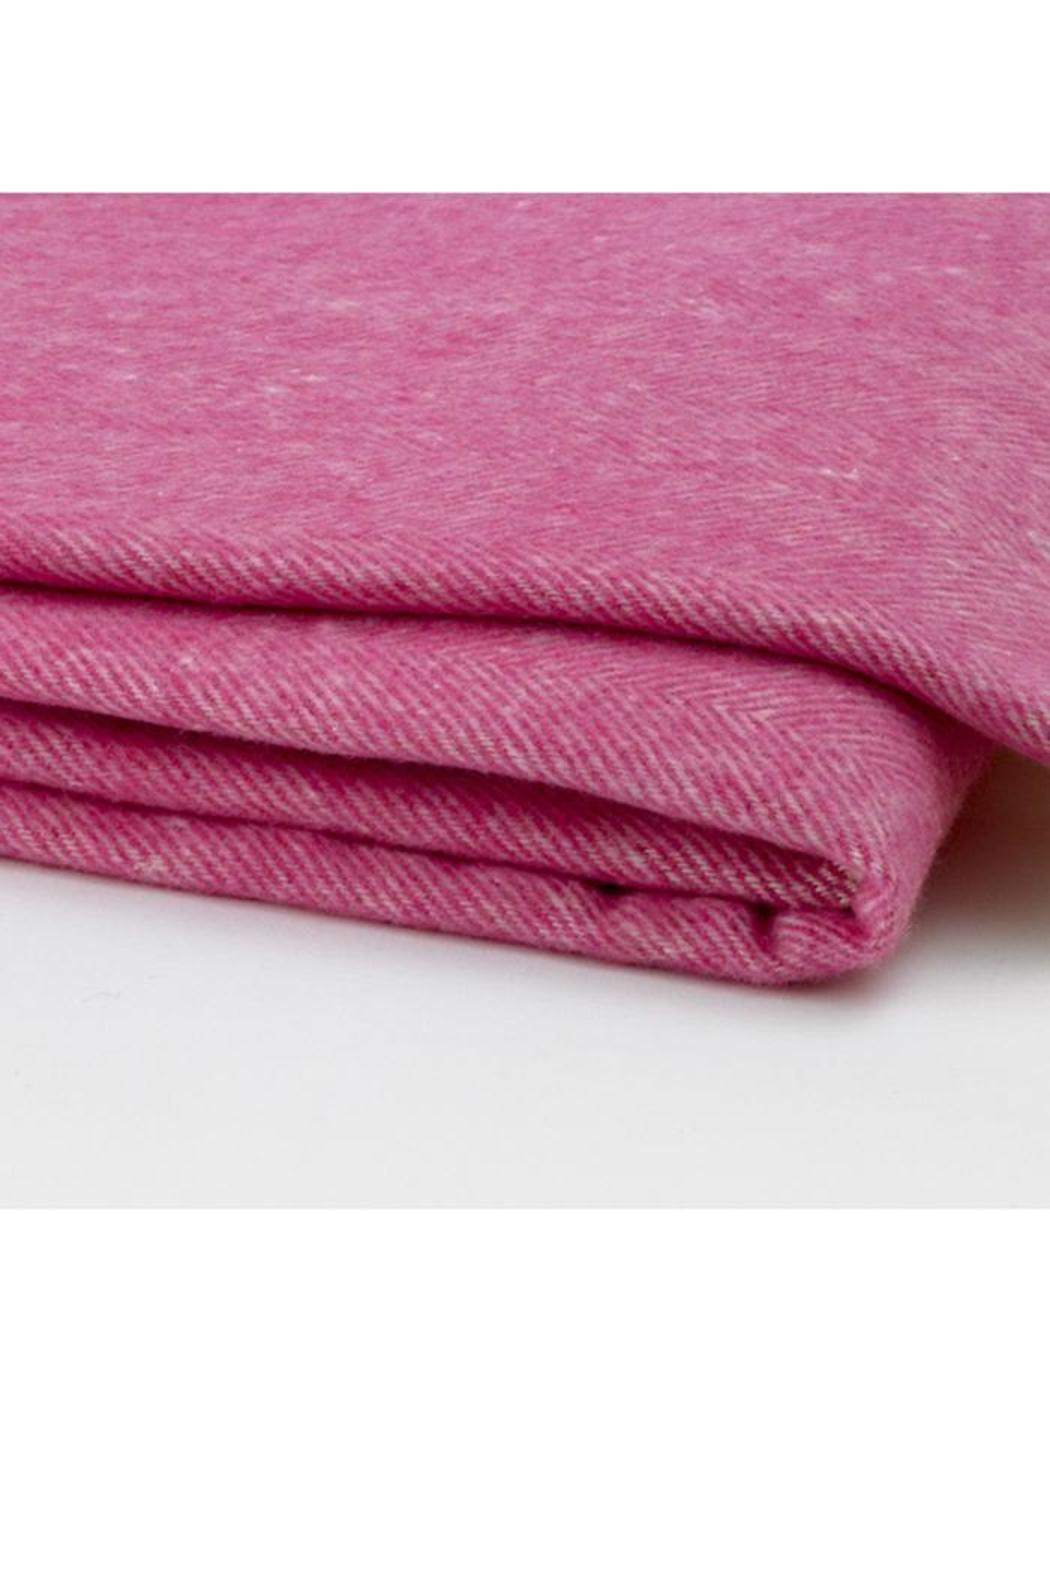 Pomegranate Pink Herringbone Blanket - Front Full Image